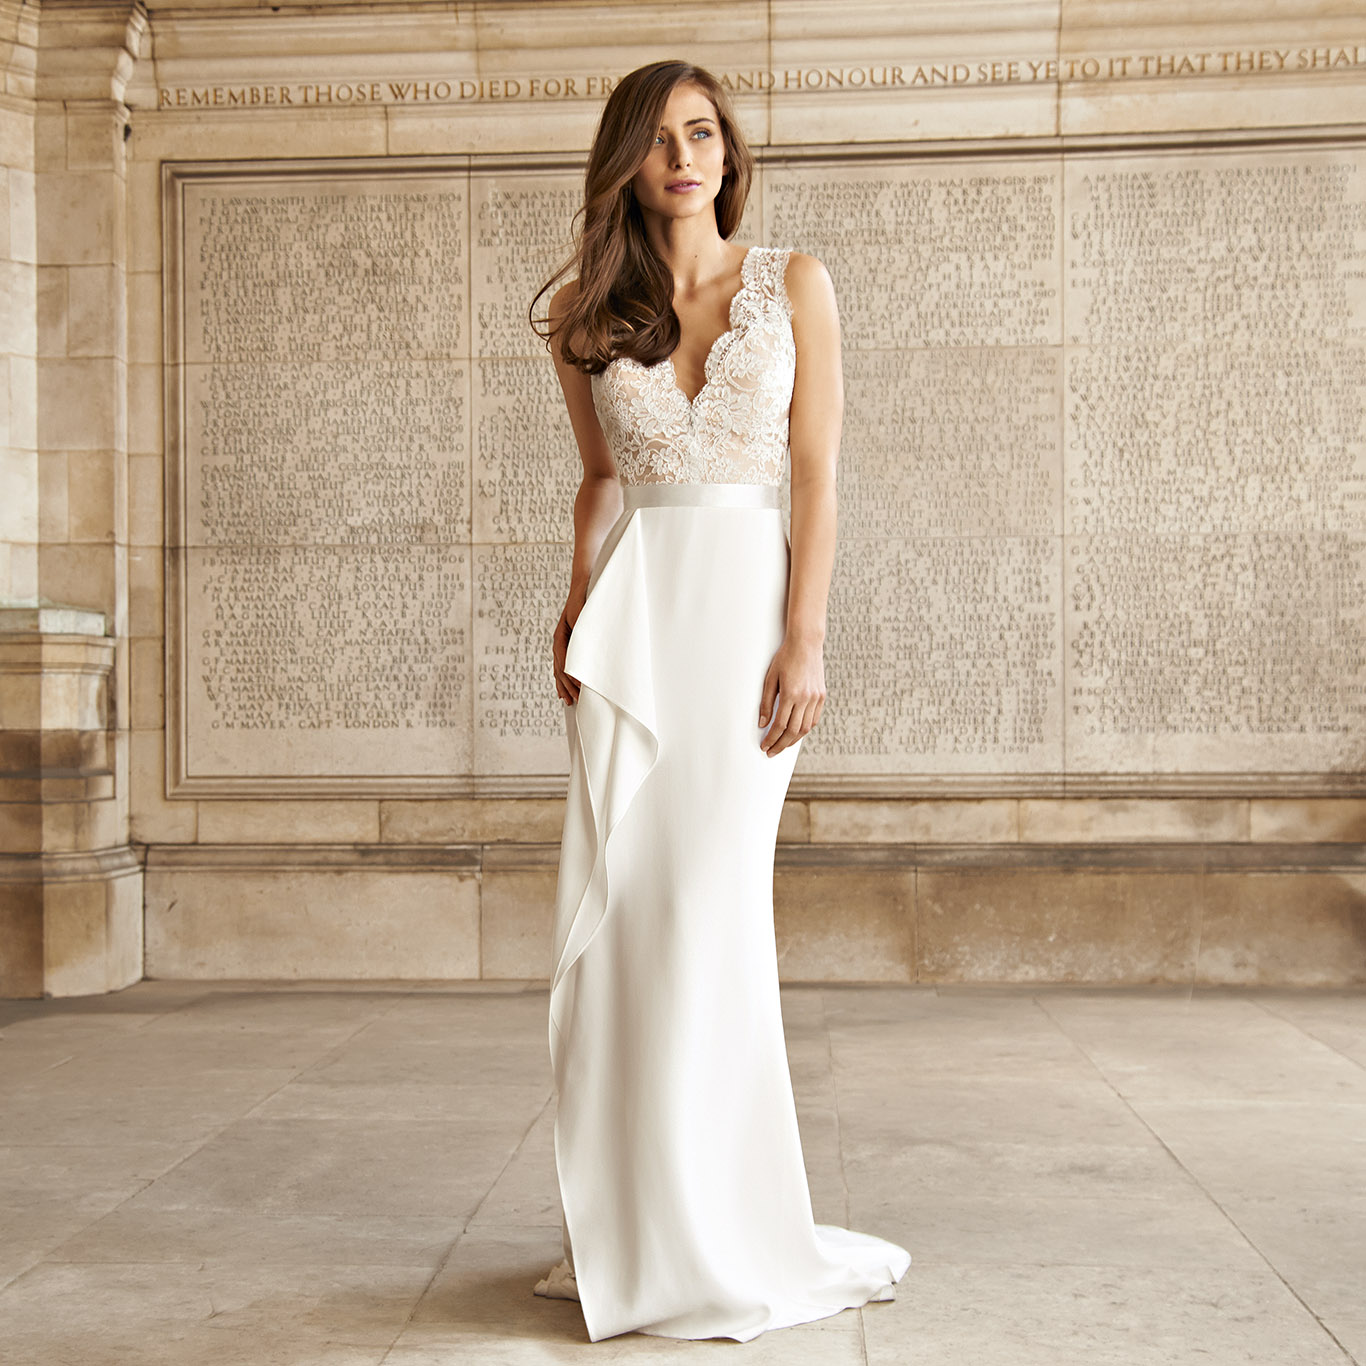 Honeymoon Clothes For Bride: Songbird Collection 2016